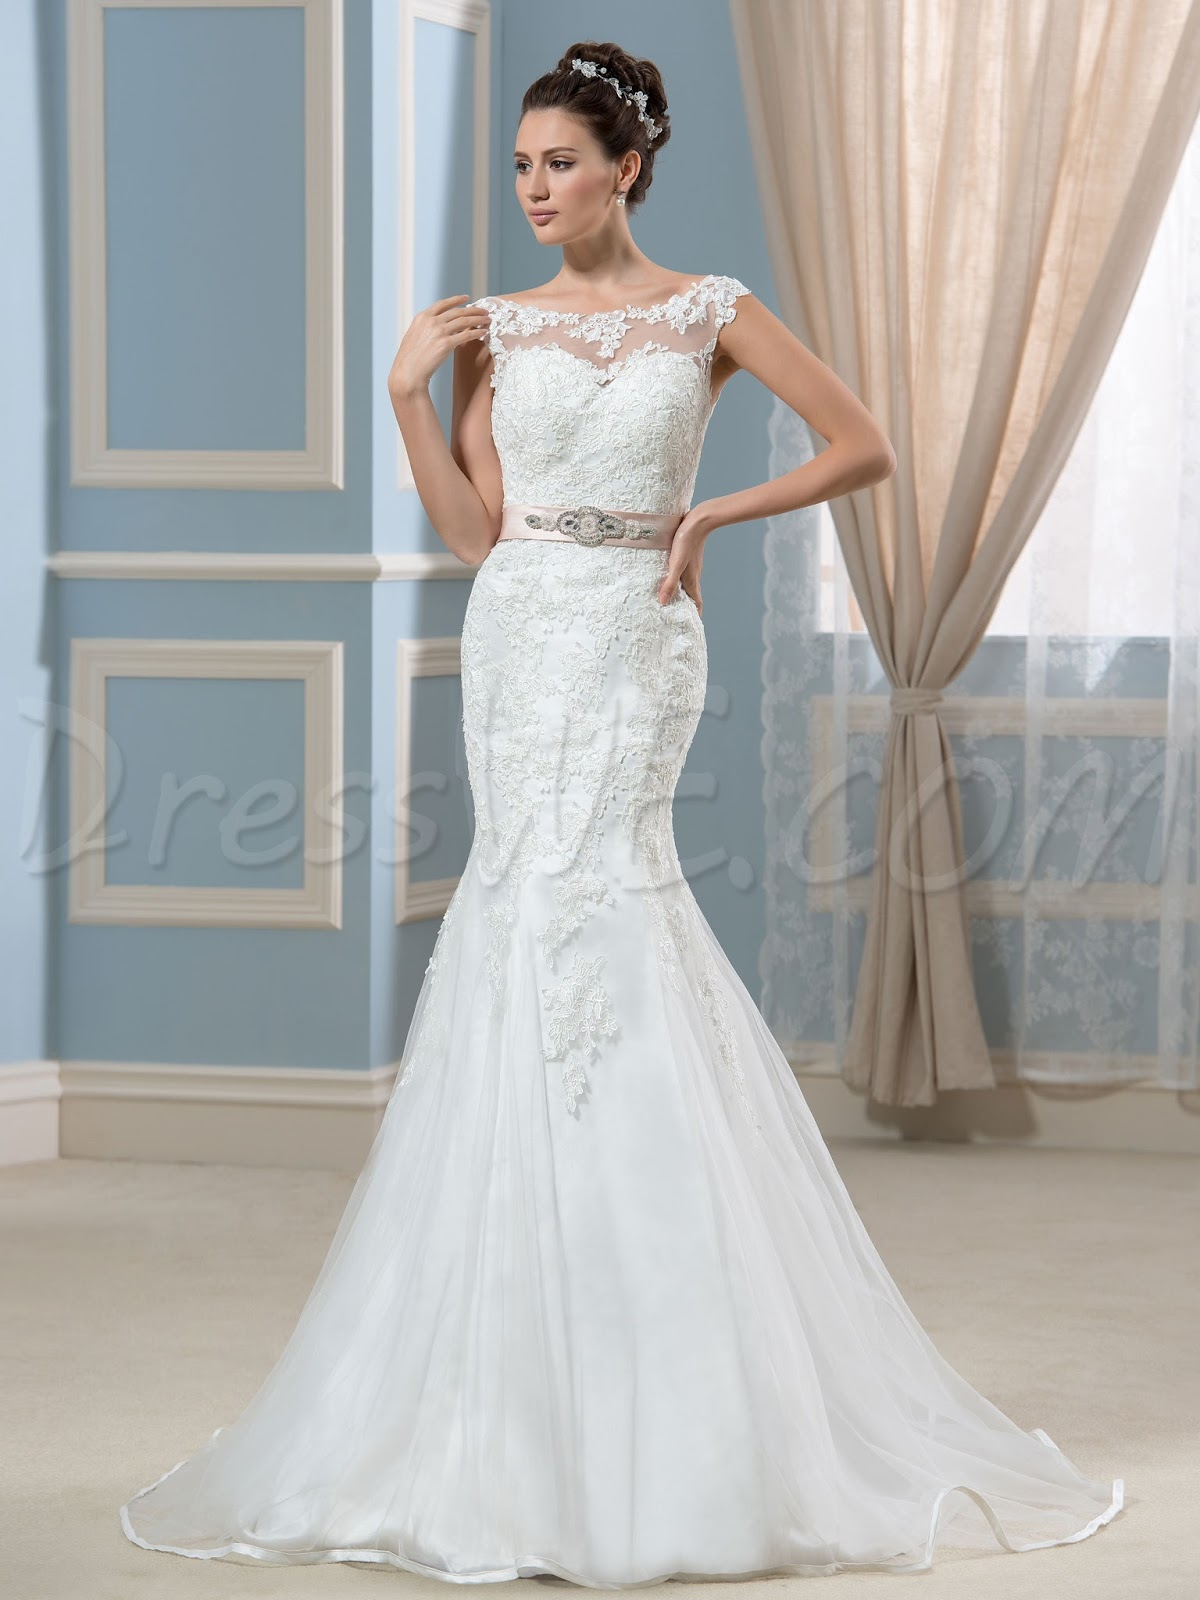 Maternity Wedding Dress Cheap 68 Trend Mother of the Bride